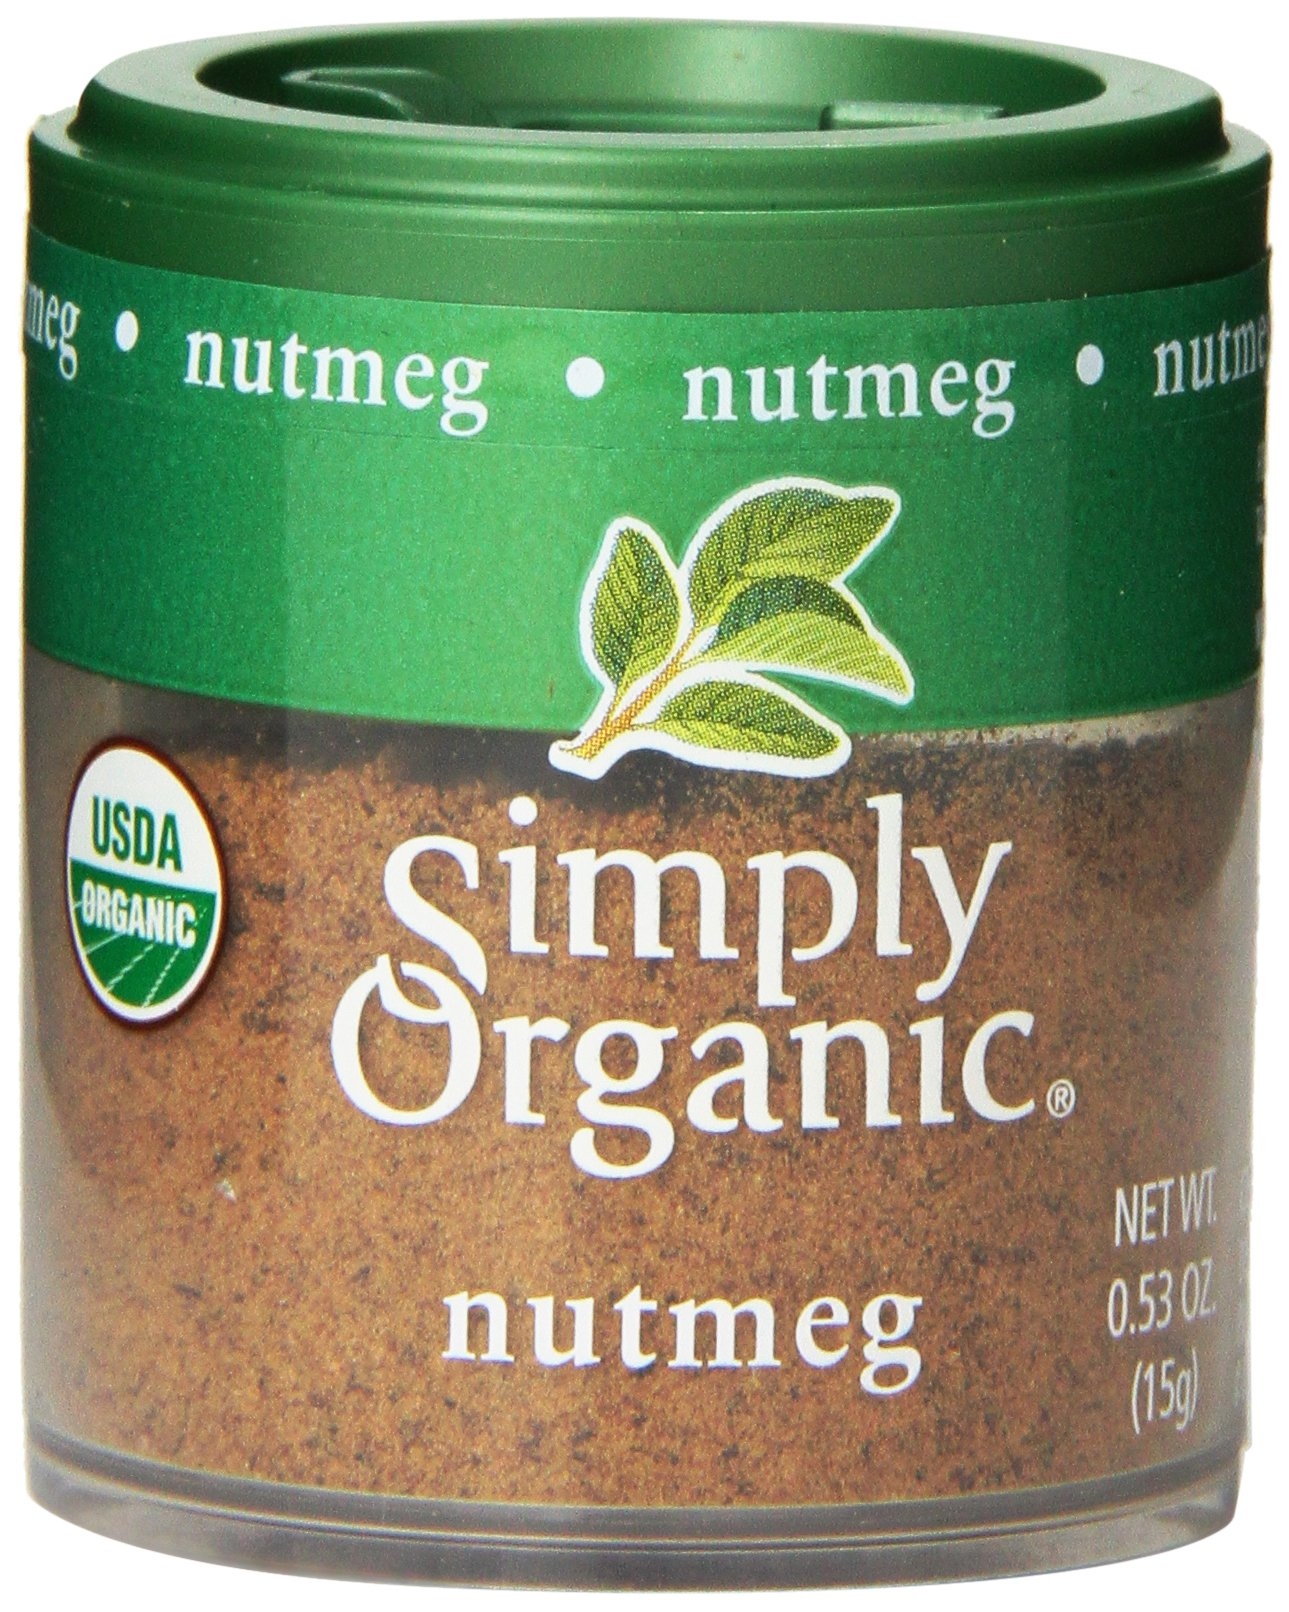 Simply Organic Mini, Og, Nutmeg Ground, 0.53-Ounce (Pack of 6)